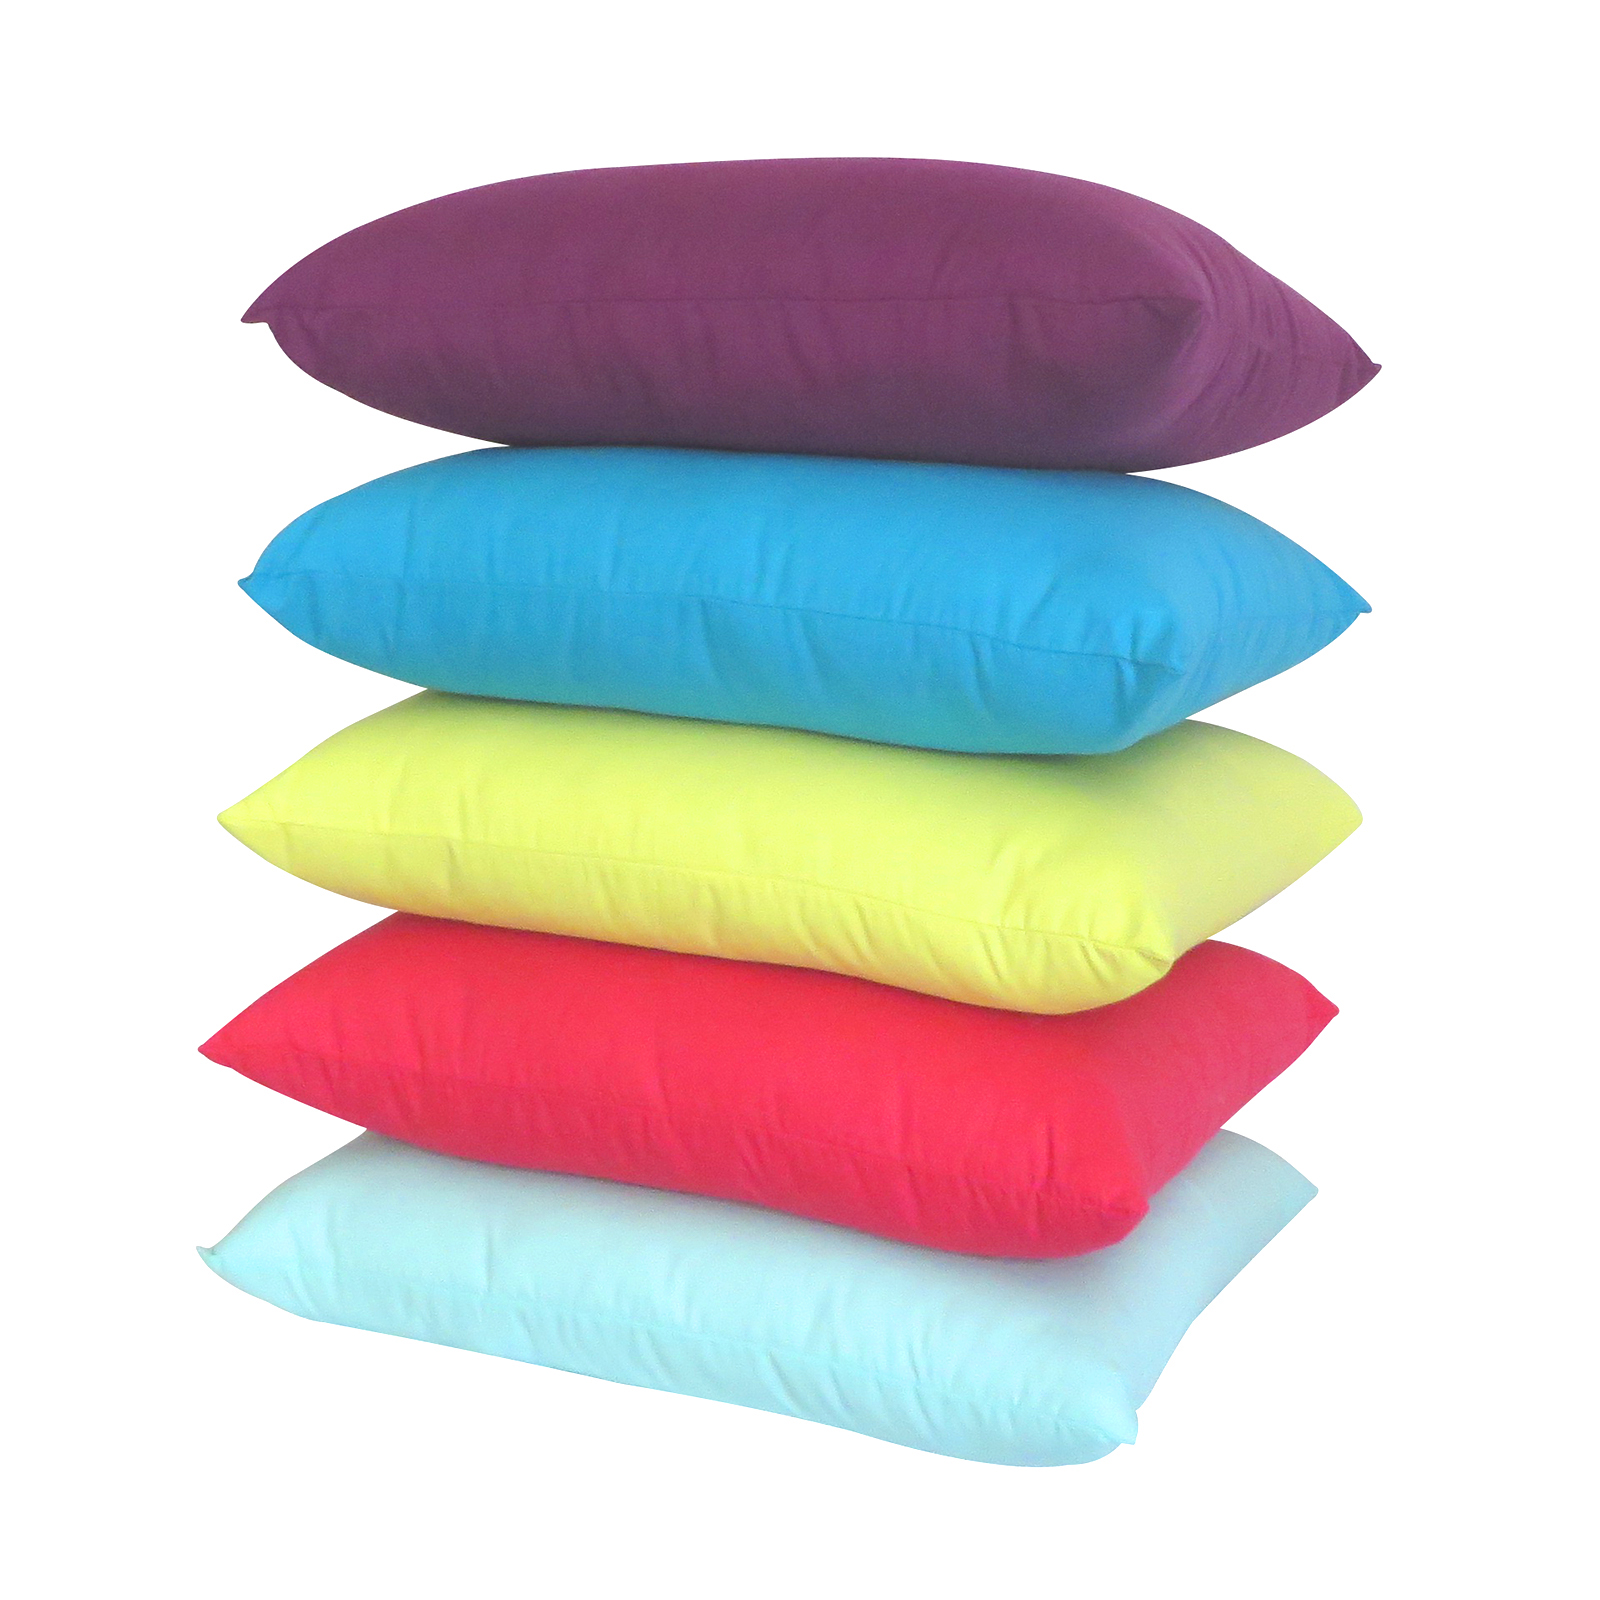 Colormate Brights 20 x 25 Bed Pillow  Shop Your Way